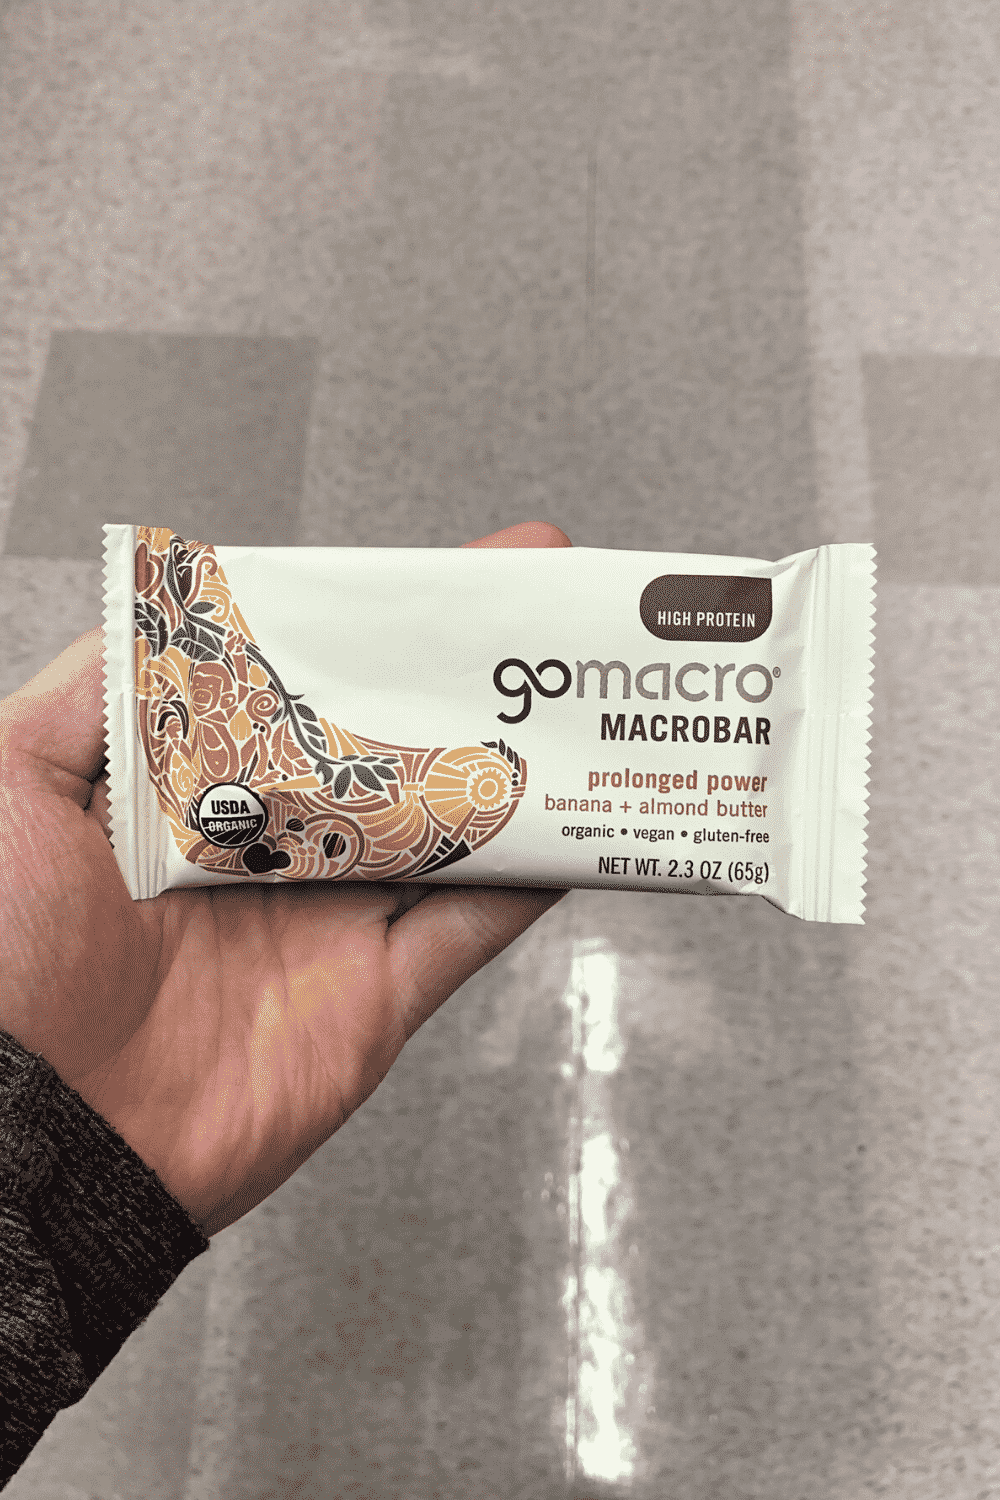 A hand holding a wrapped gomacro banana plus almond butter flavored bar